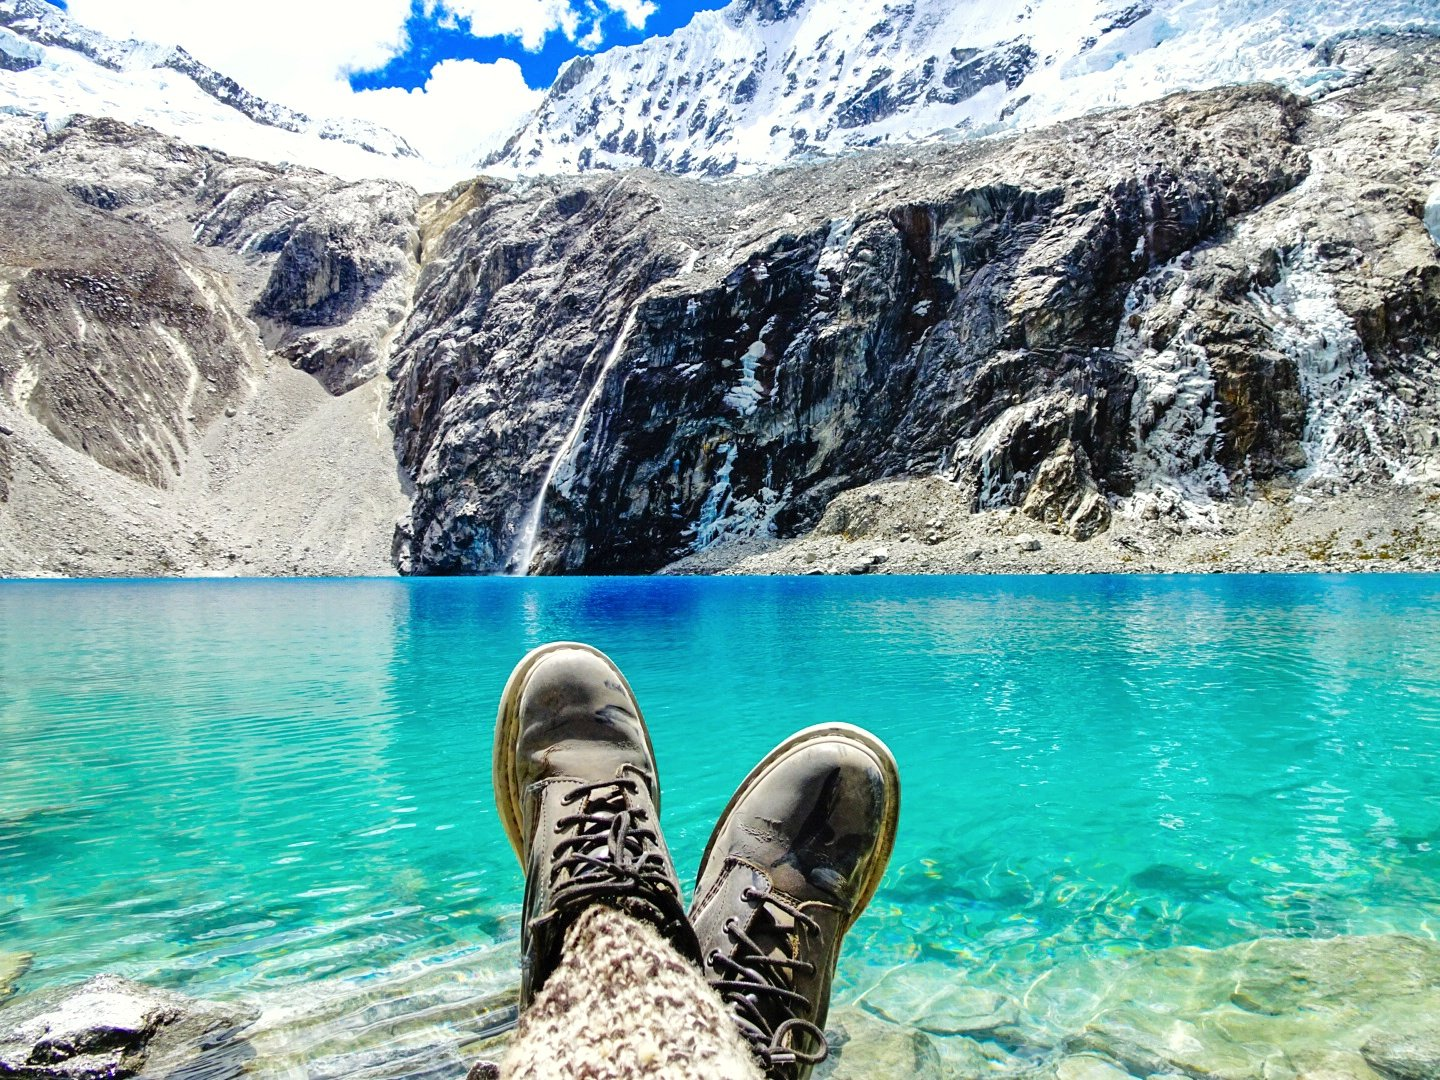 "<img src=""images/"" width=""800"" height=""600"" alt=""laguna 69 - wp image 1154137756 - Peru: Our Guide to Huaraz and The Sexy Laguna 69"">"